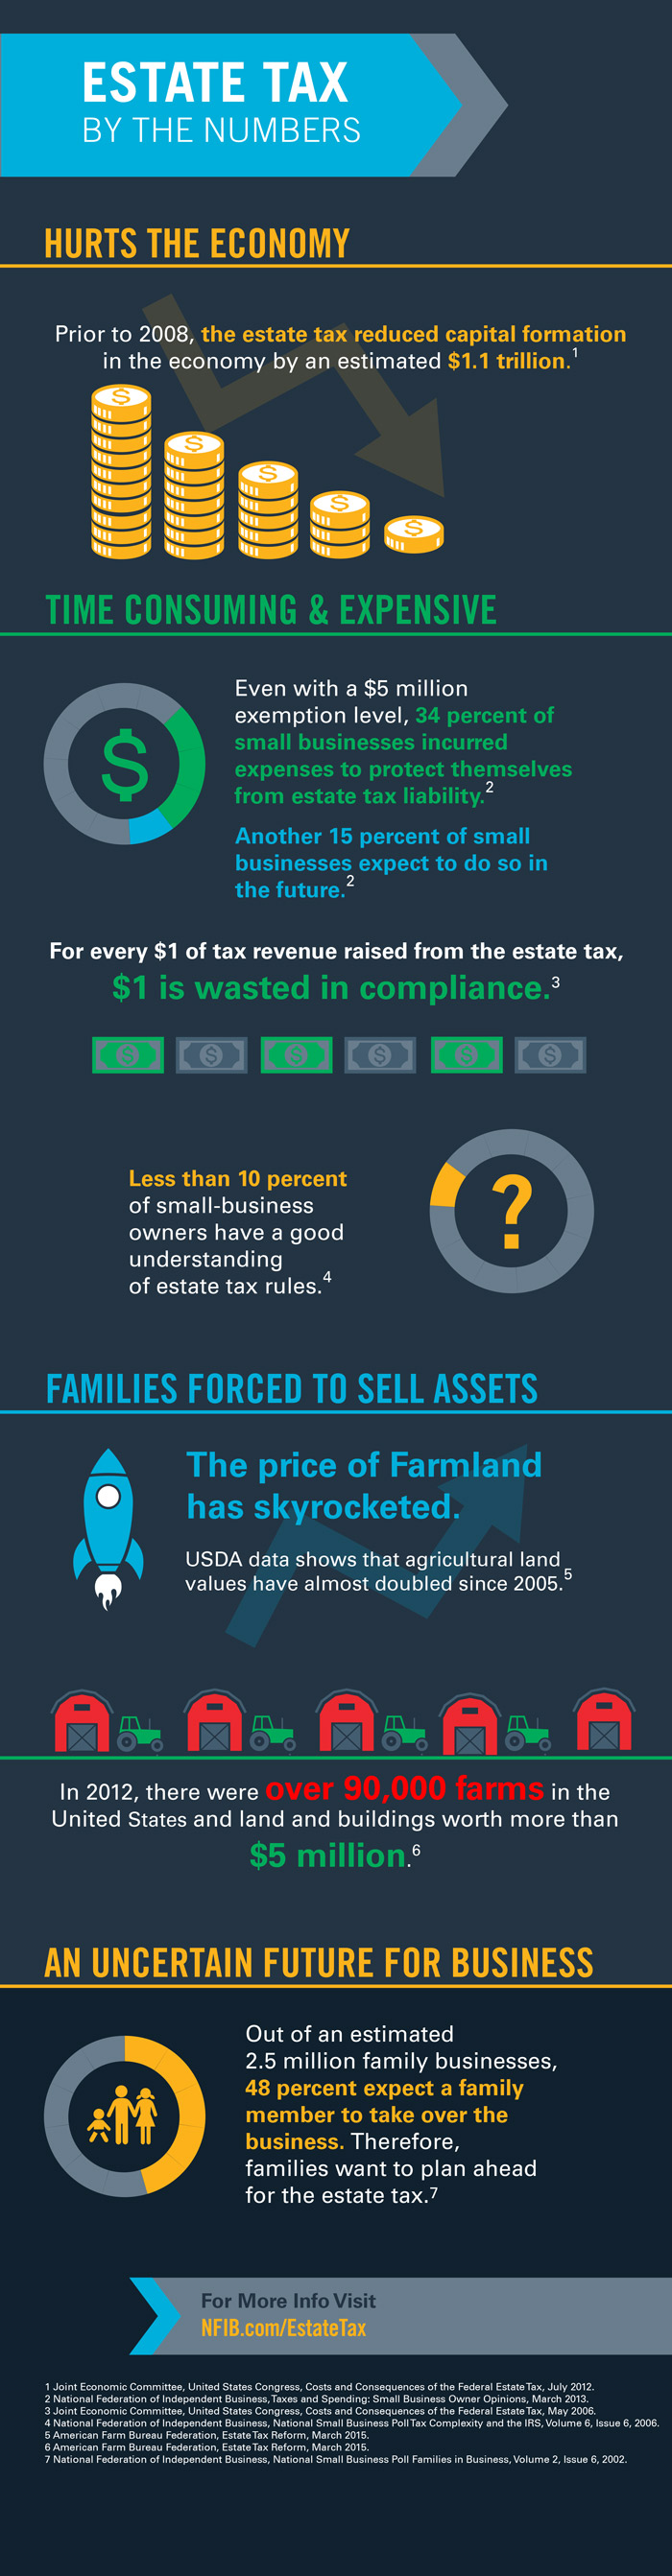 Estate-Tax-Infographic-for-Sales.jpg